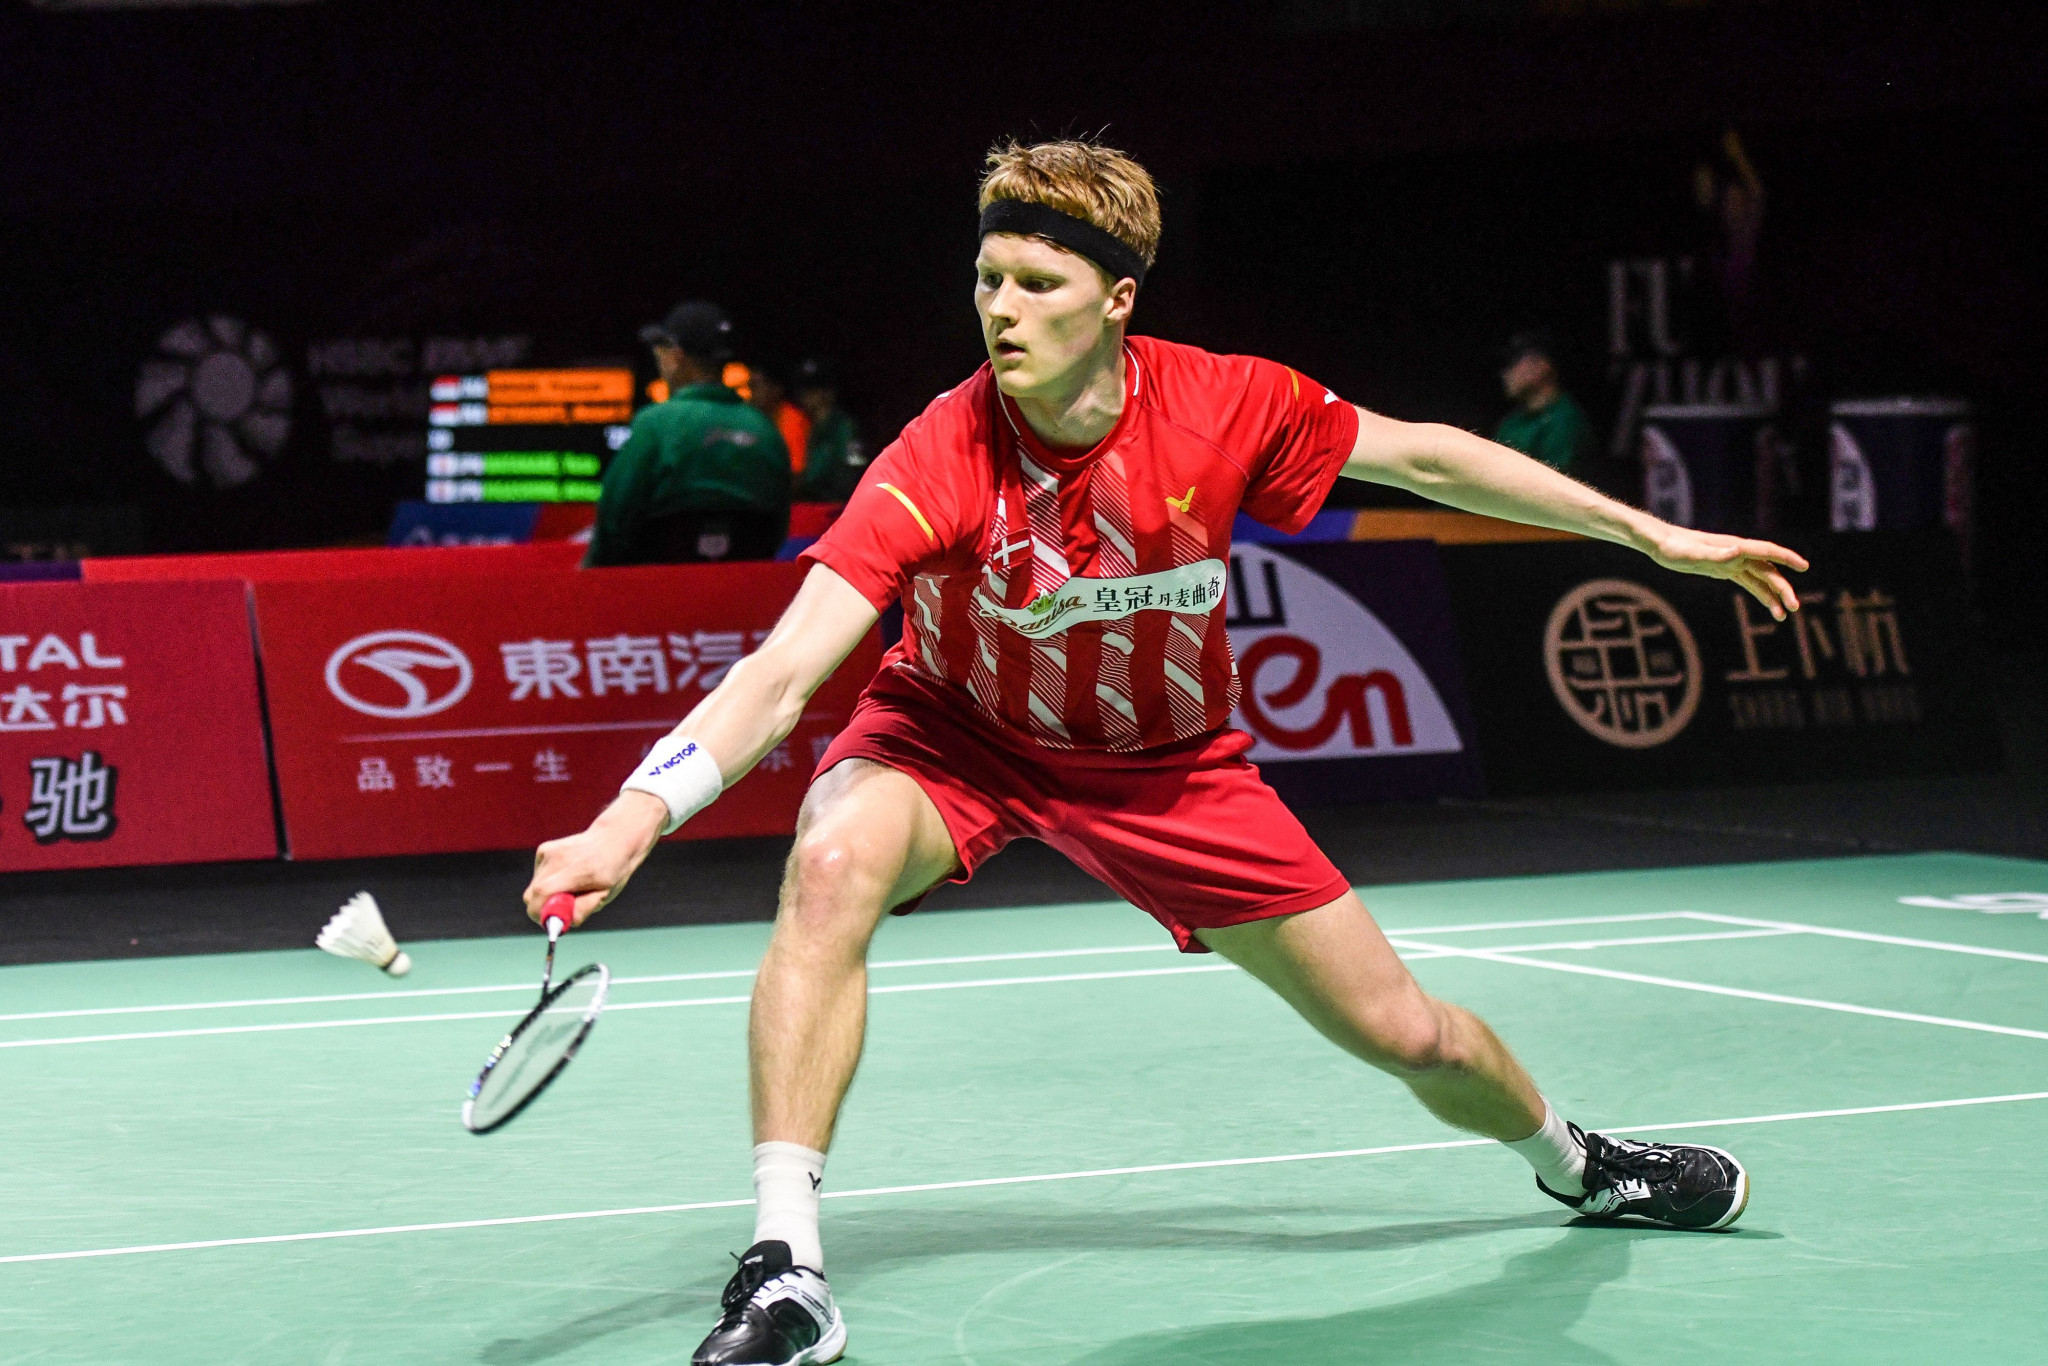 Top seeds all win on day one of European Men's and Women's Badminton Championships